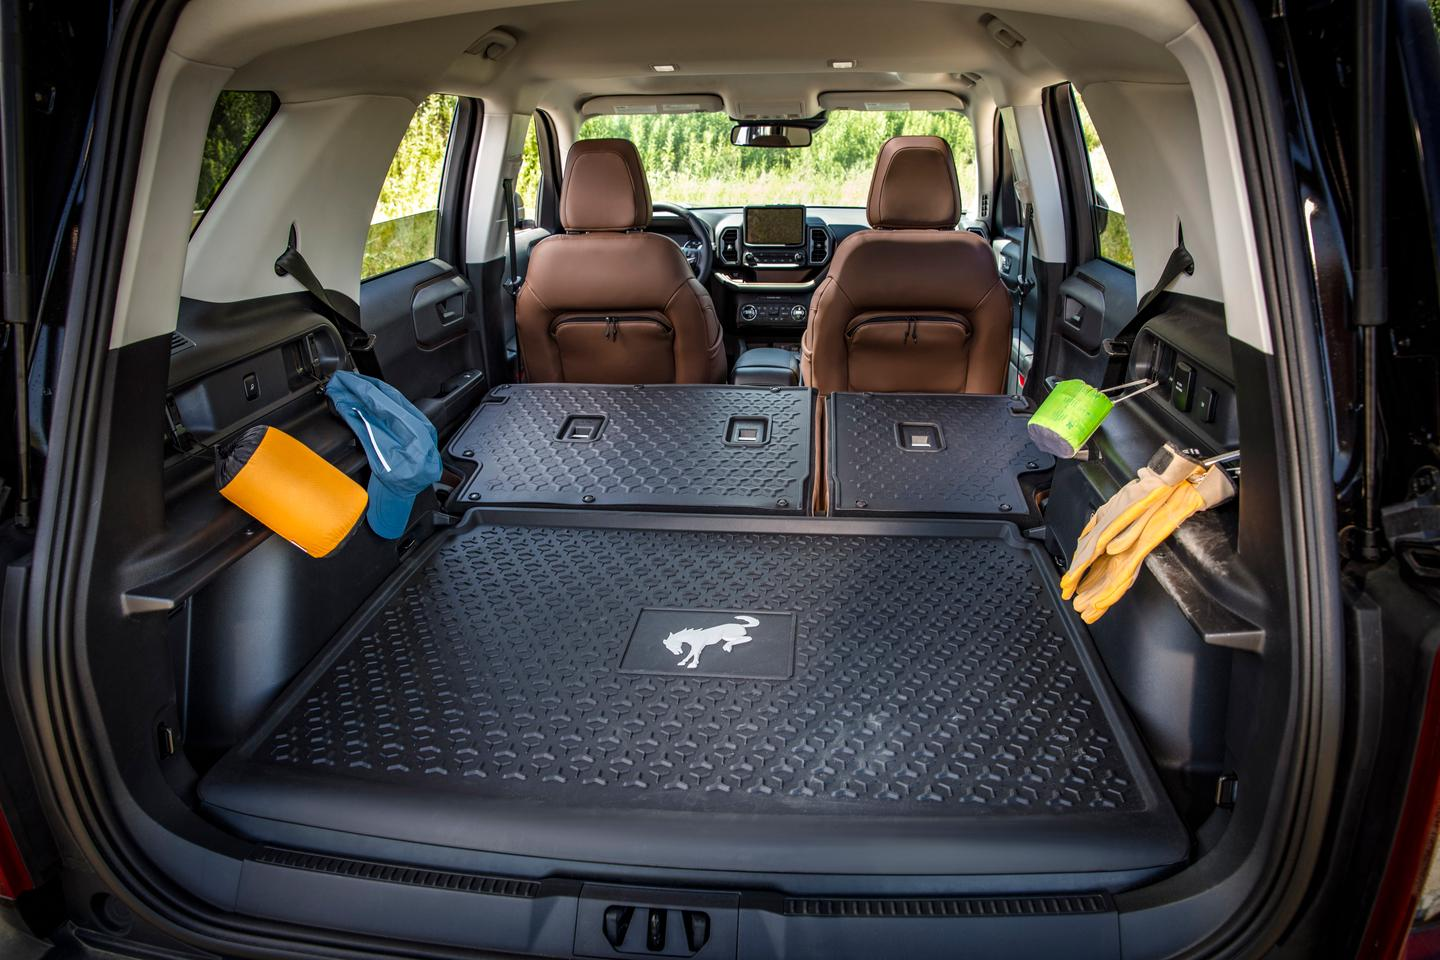 The Bronco Sport's washable rubber flooring and seat backs and carabiner hooks are sure to prove helpful to campers